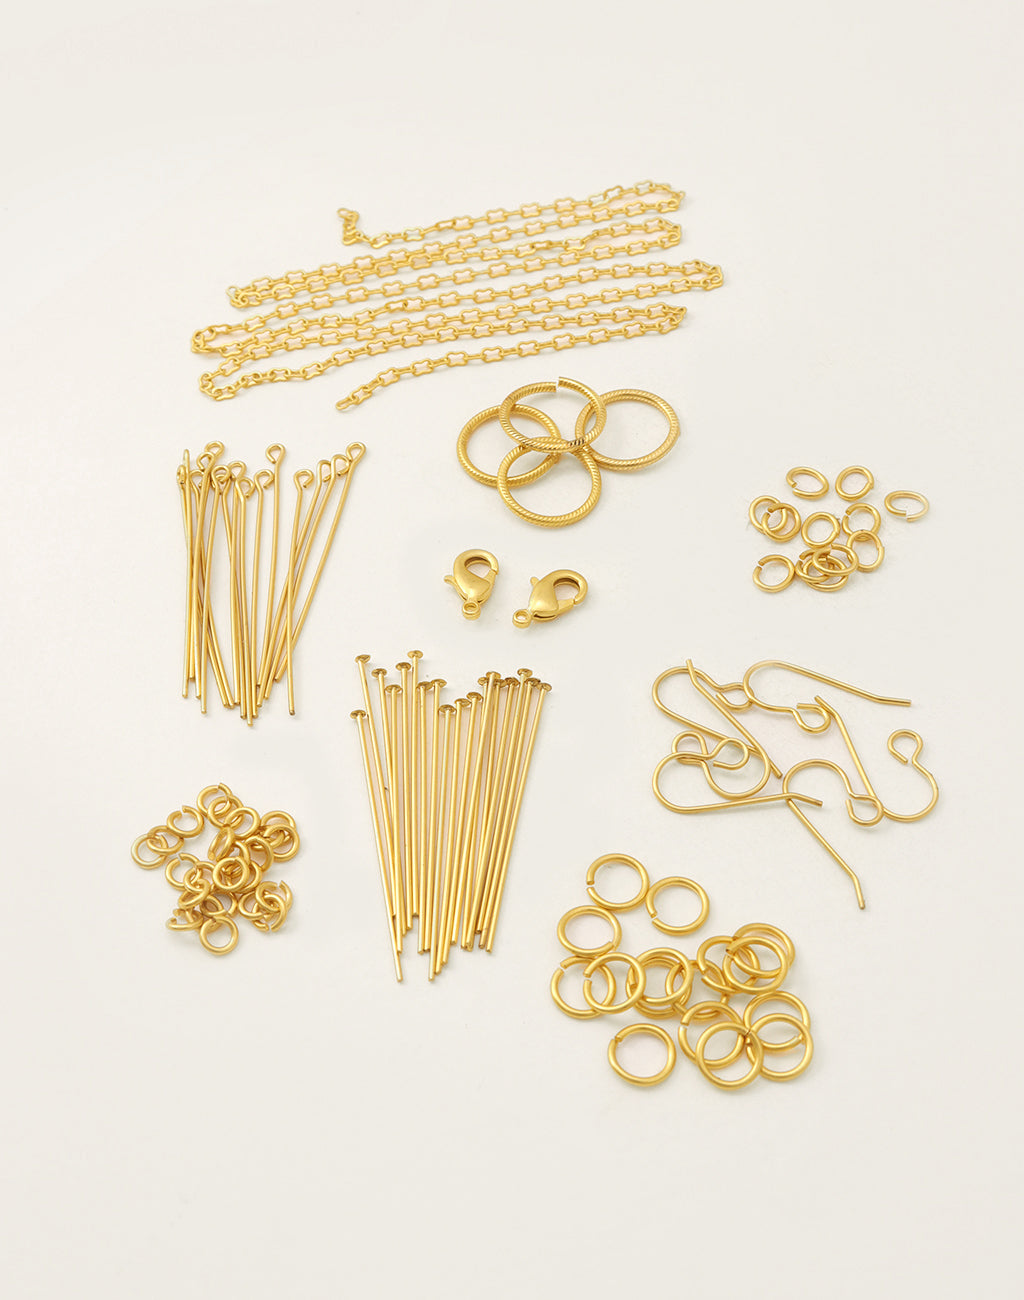 10K Gold Basics Findings Kit